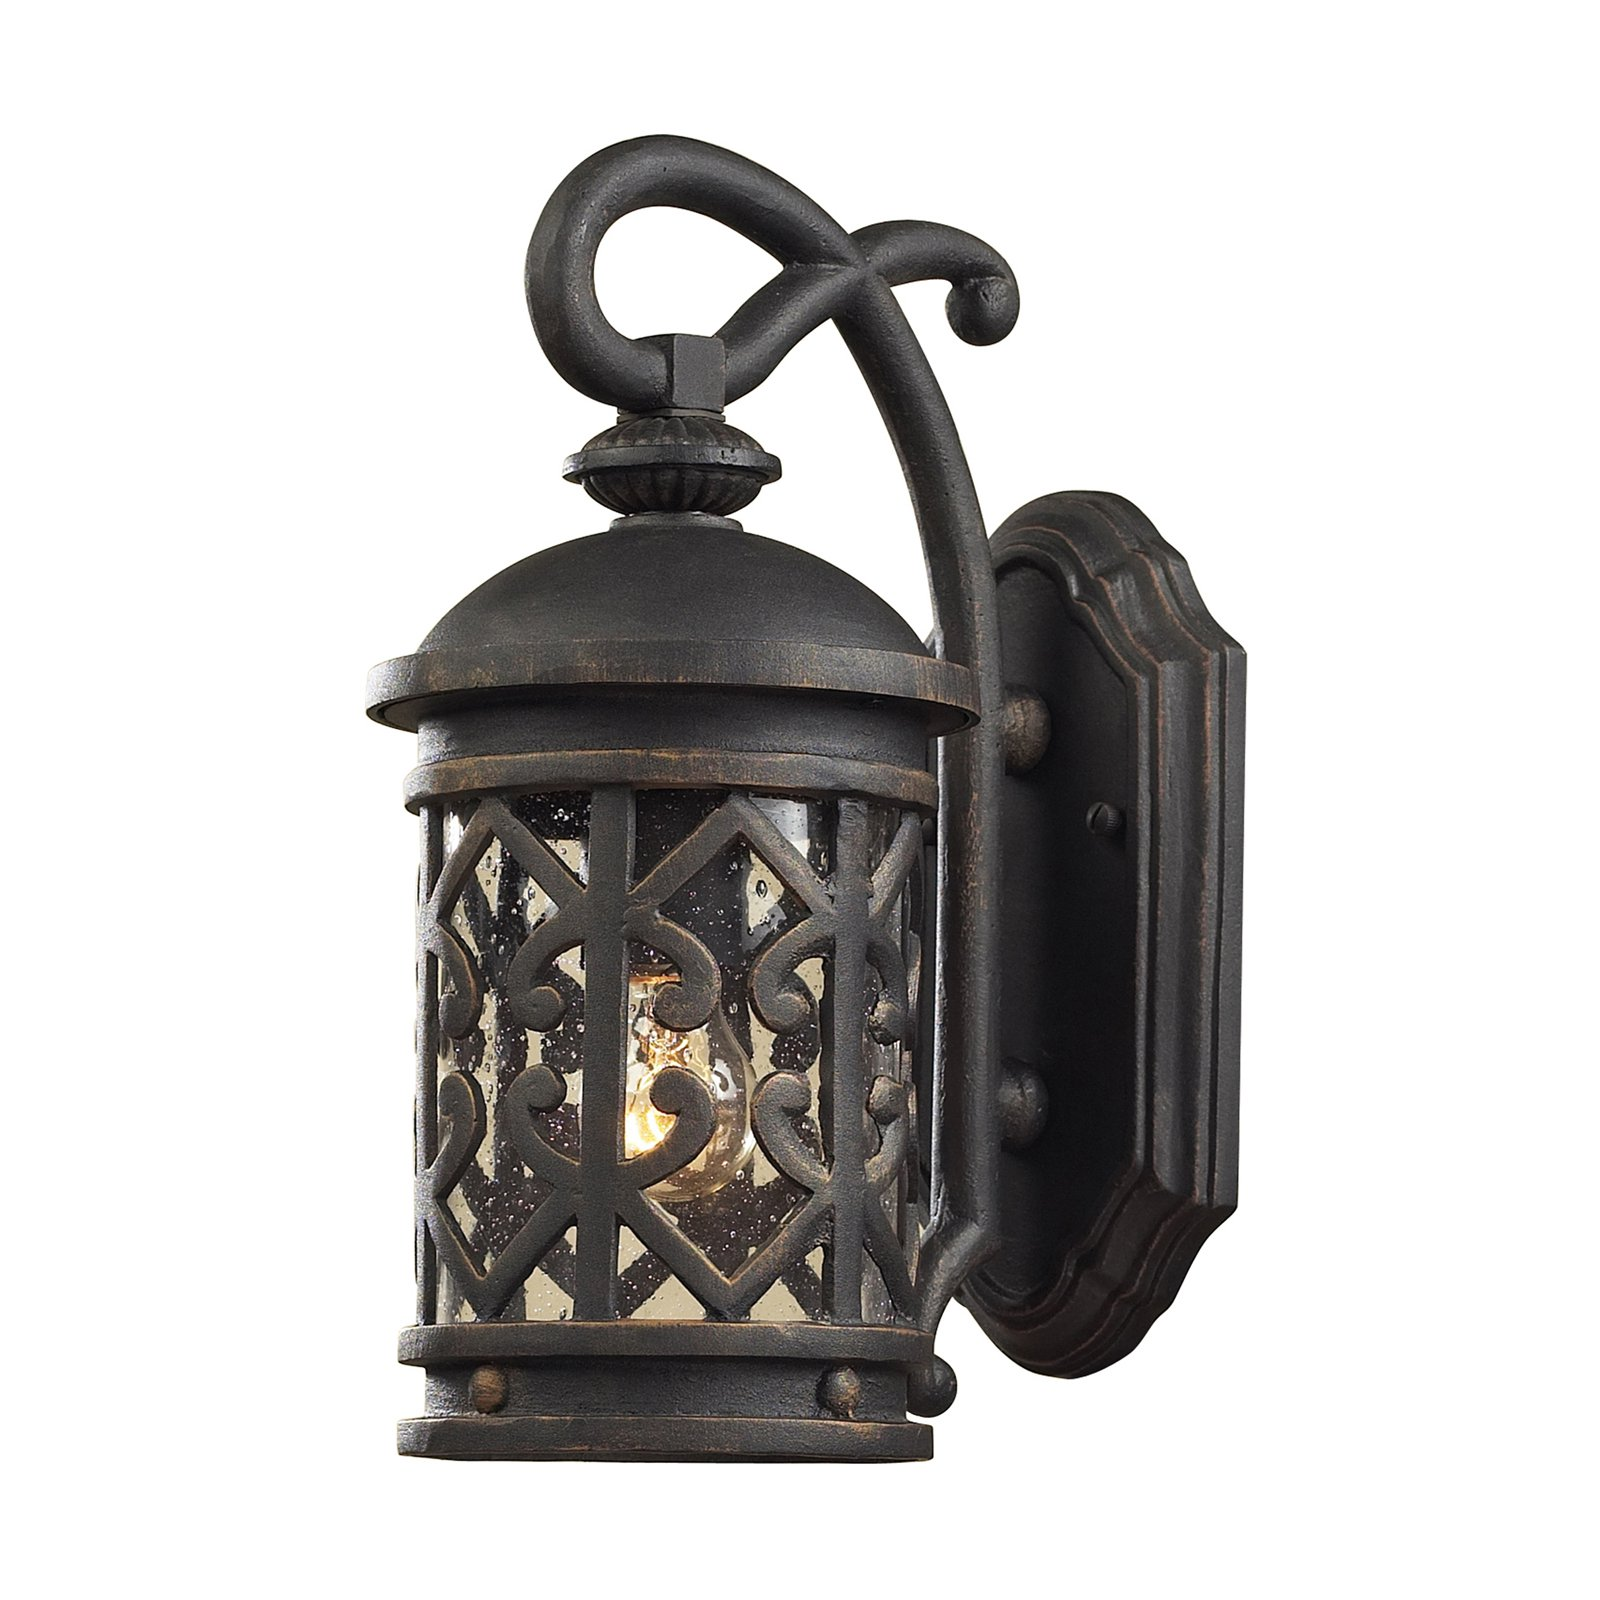 ELK Lighting Tuscany Coast 42060 1 1-Light Outdoor Wall Sconce by Elk Lighting